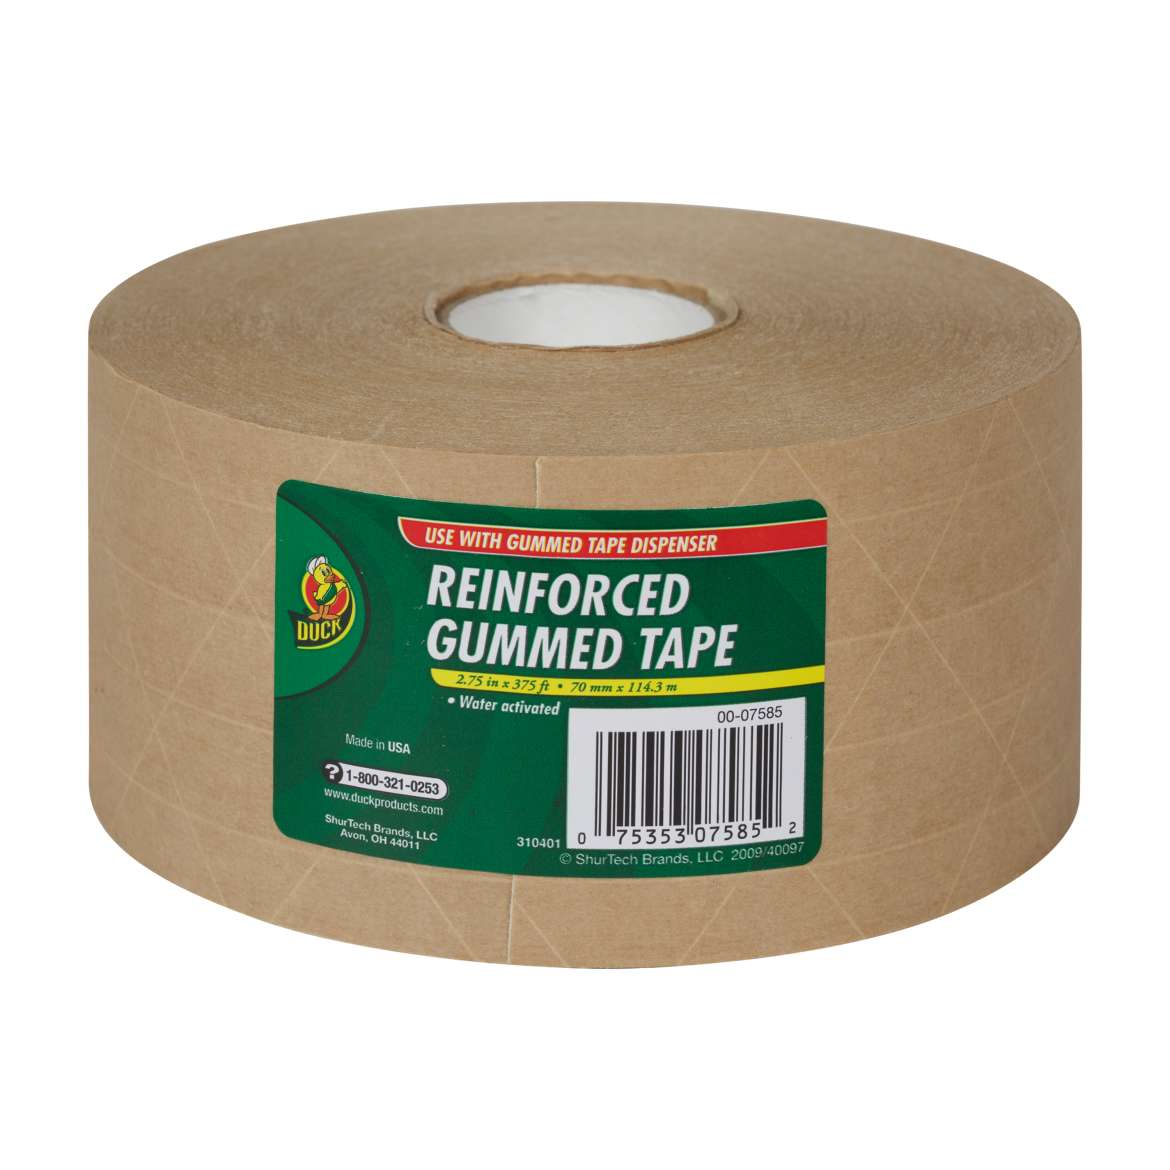 Duck® Brand Reinforced Gummed Tape - Tan, 2.75 in. x 375 ft. Image